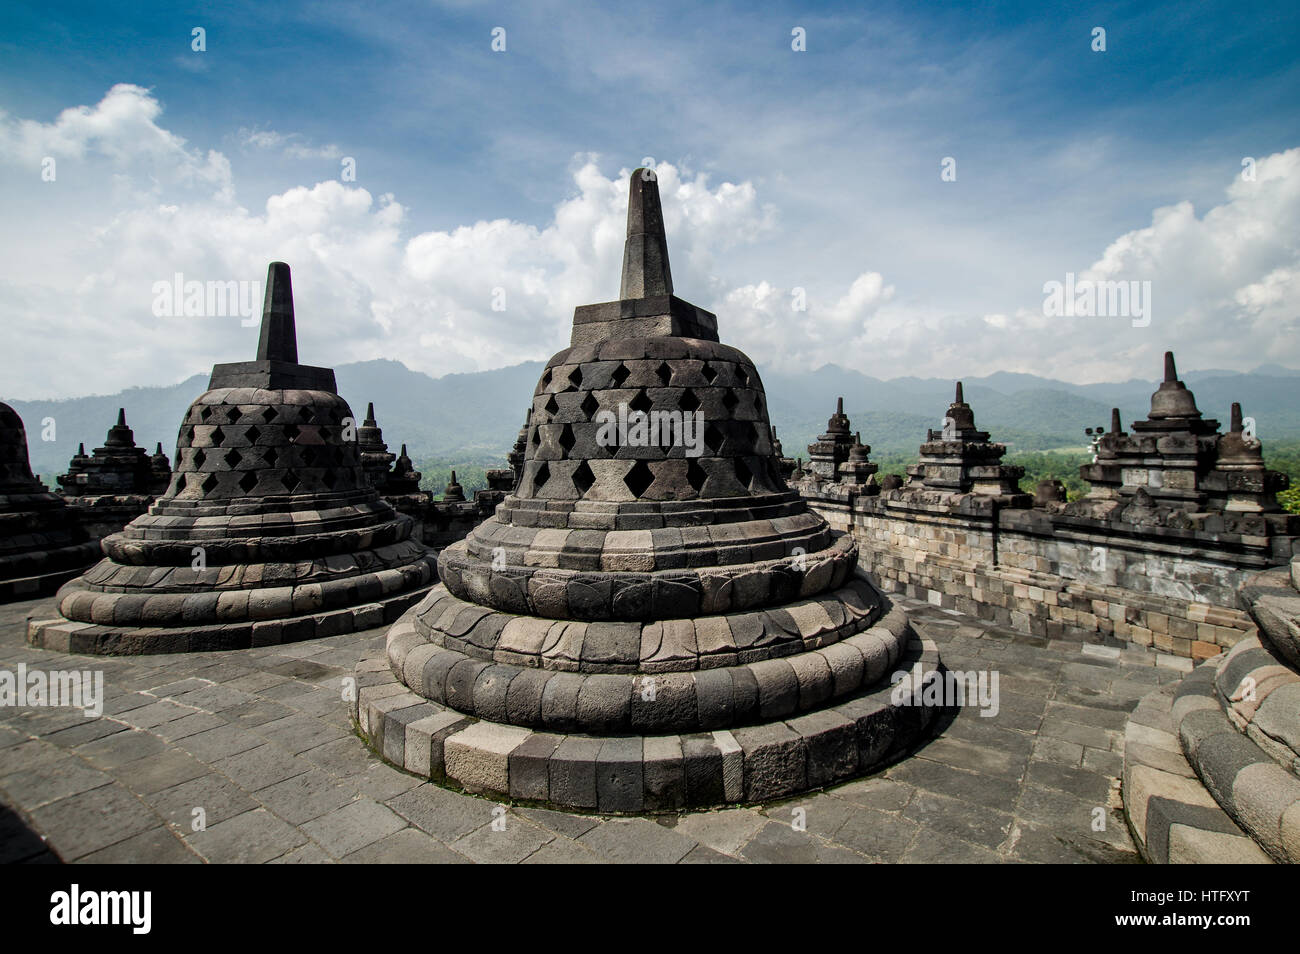 Borobudur Buddhist Temple in Magelang, Central Java - Stock Image